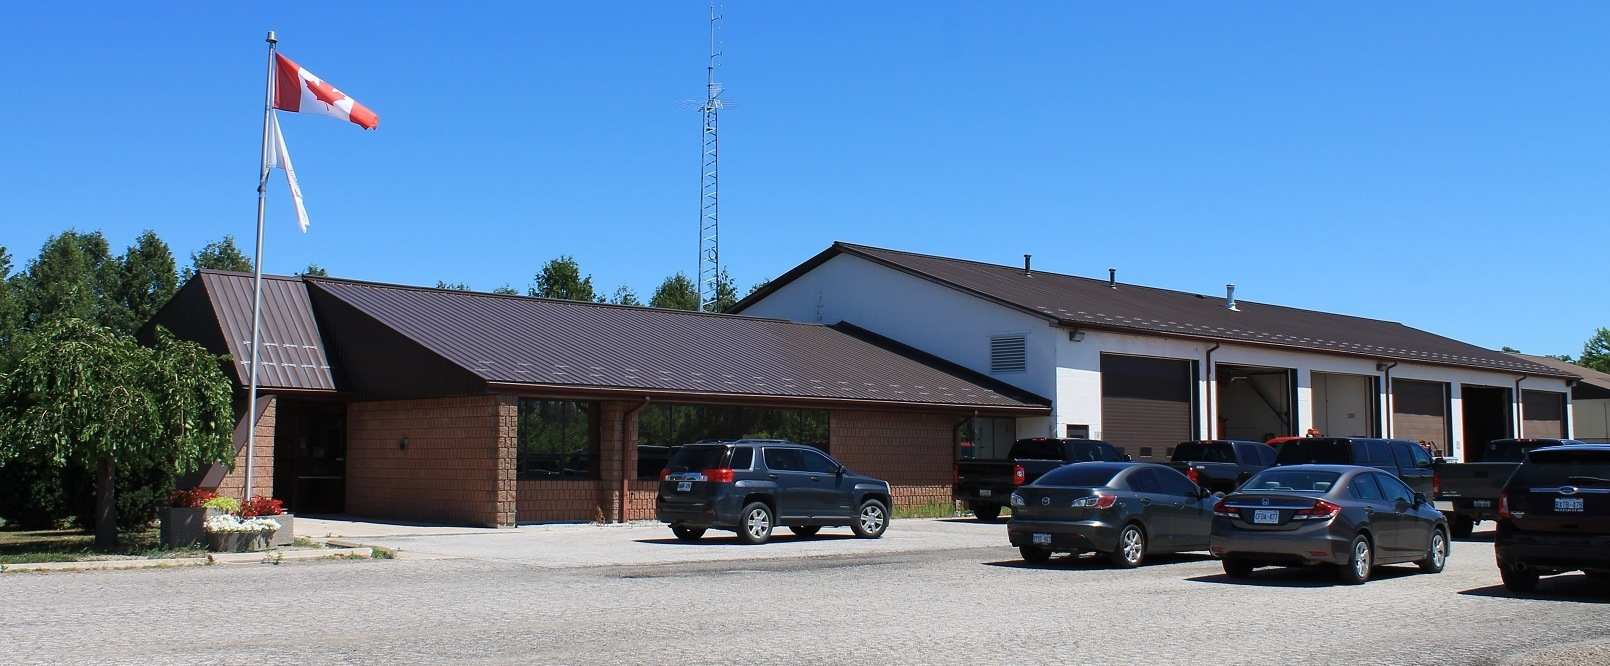 Warwick Township Office building